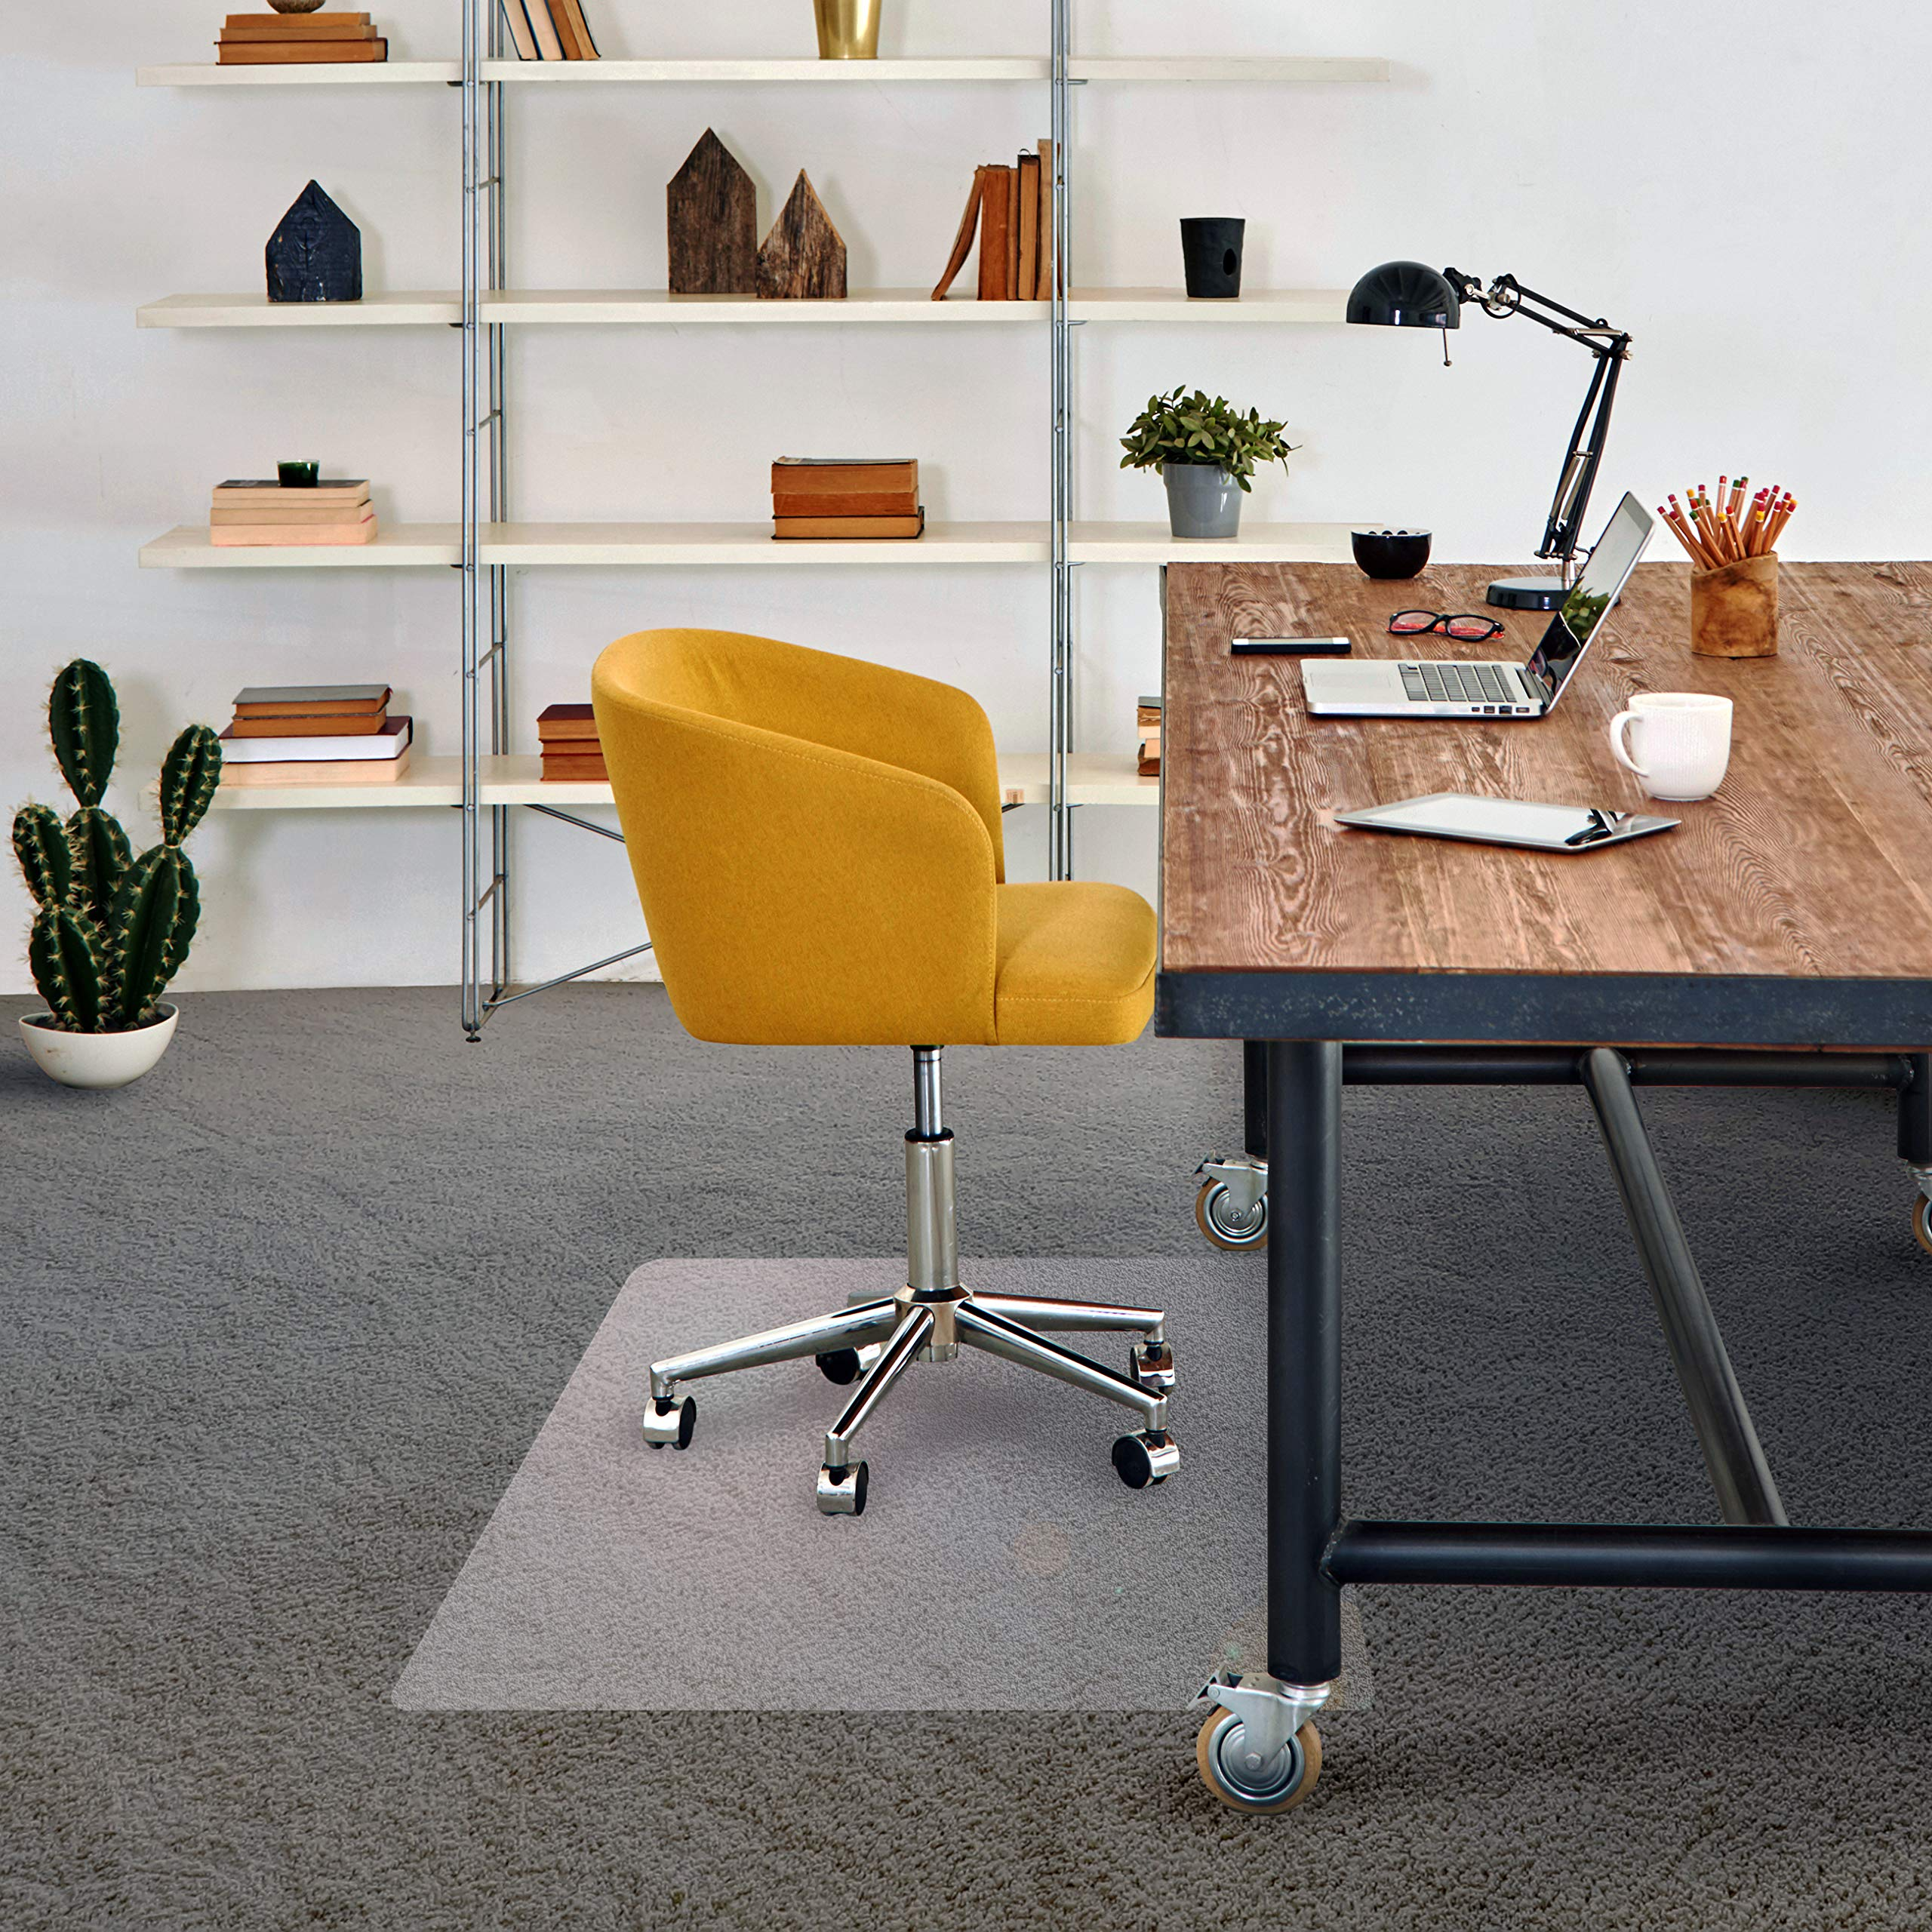 Cleartex Advantagemat Chair Mat for Low Pile Carpets (1/4'' or less), Phthalate-Free PVC, Rectangular, 48'' x 60''